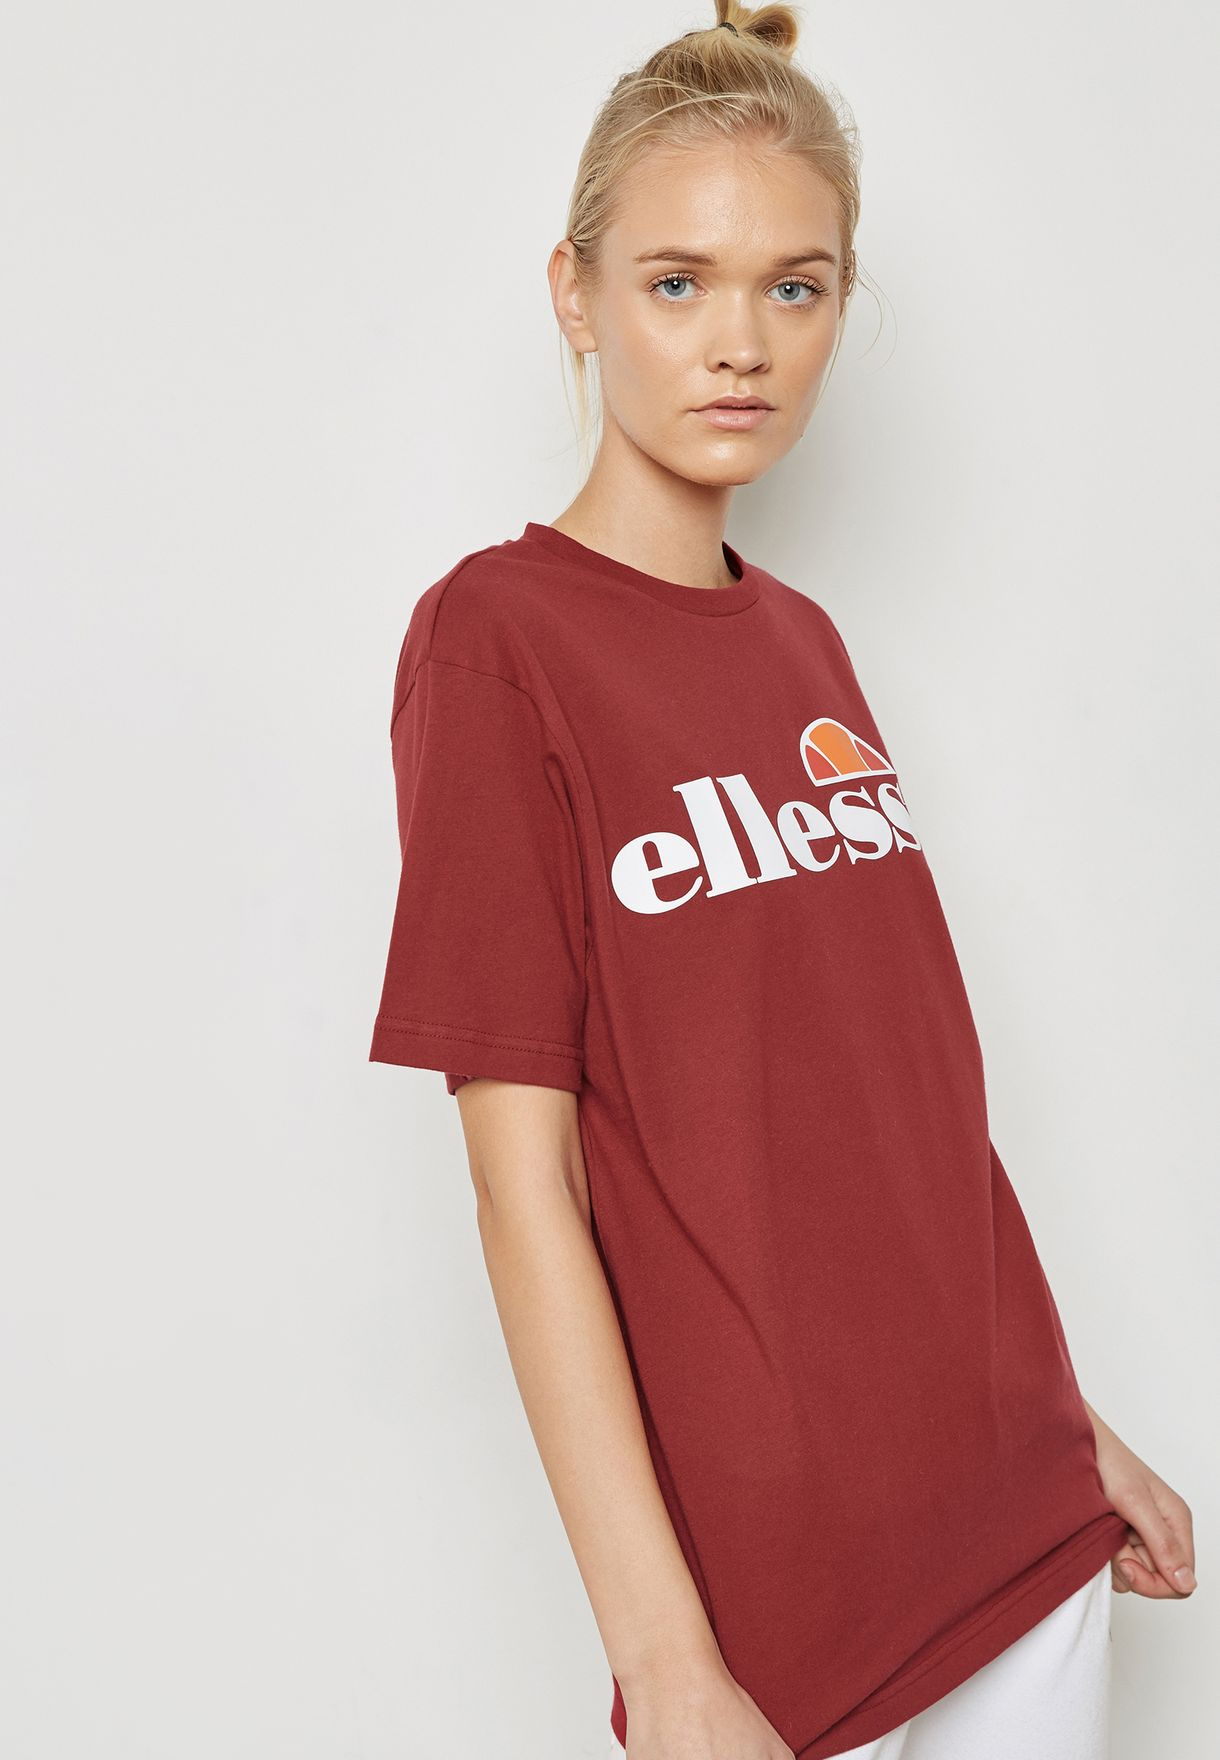 971e0b1fab39 Shop Ellesse red Albany T-Shirt SGS03237 for Women in Bahrain ...